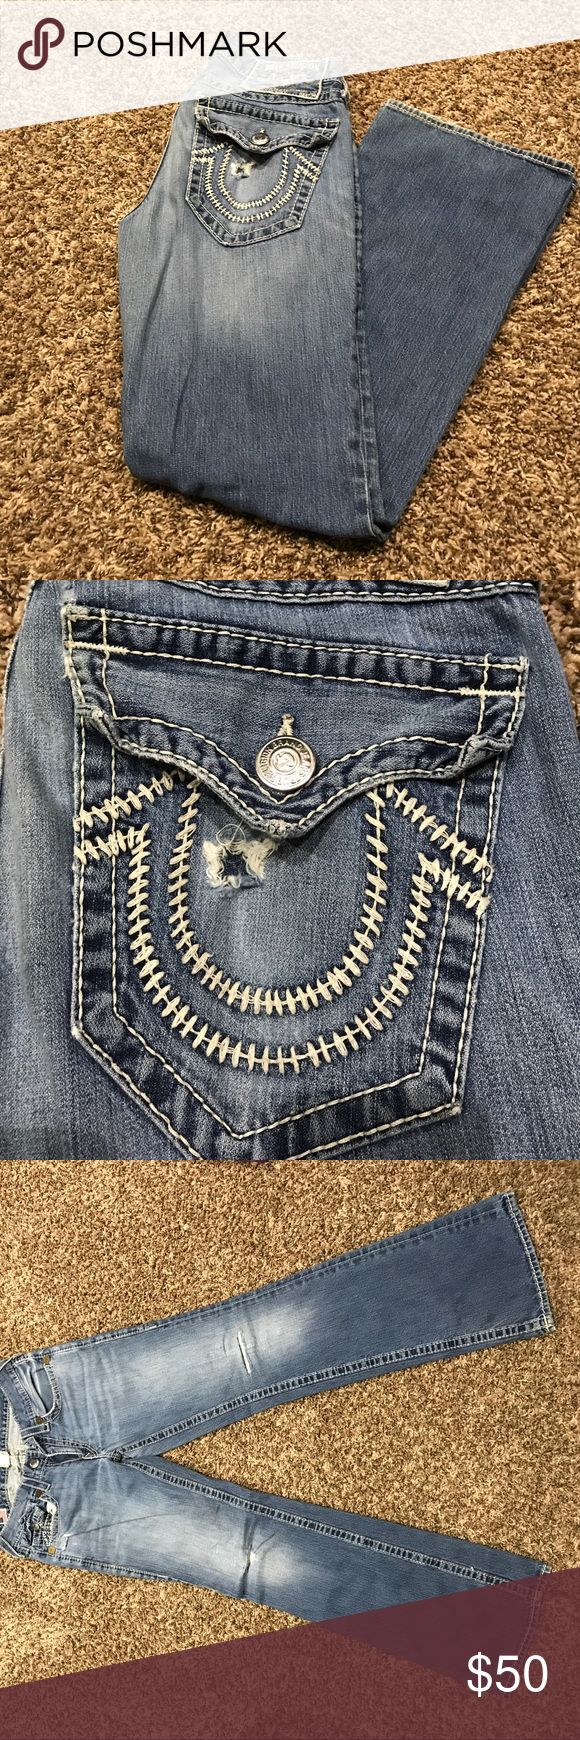 Mens true religion jeans Distressed men's true religion jeans. Good condition, only worn a few times True Religion Jeans Straight